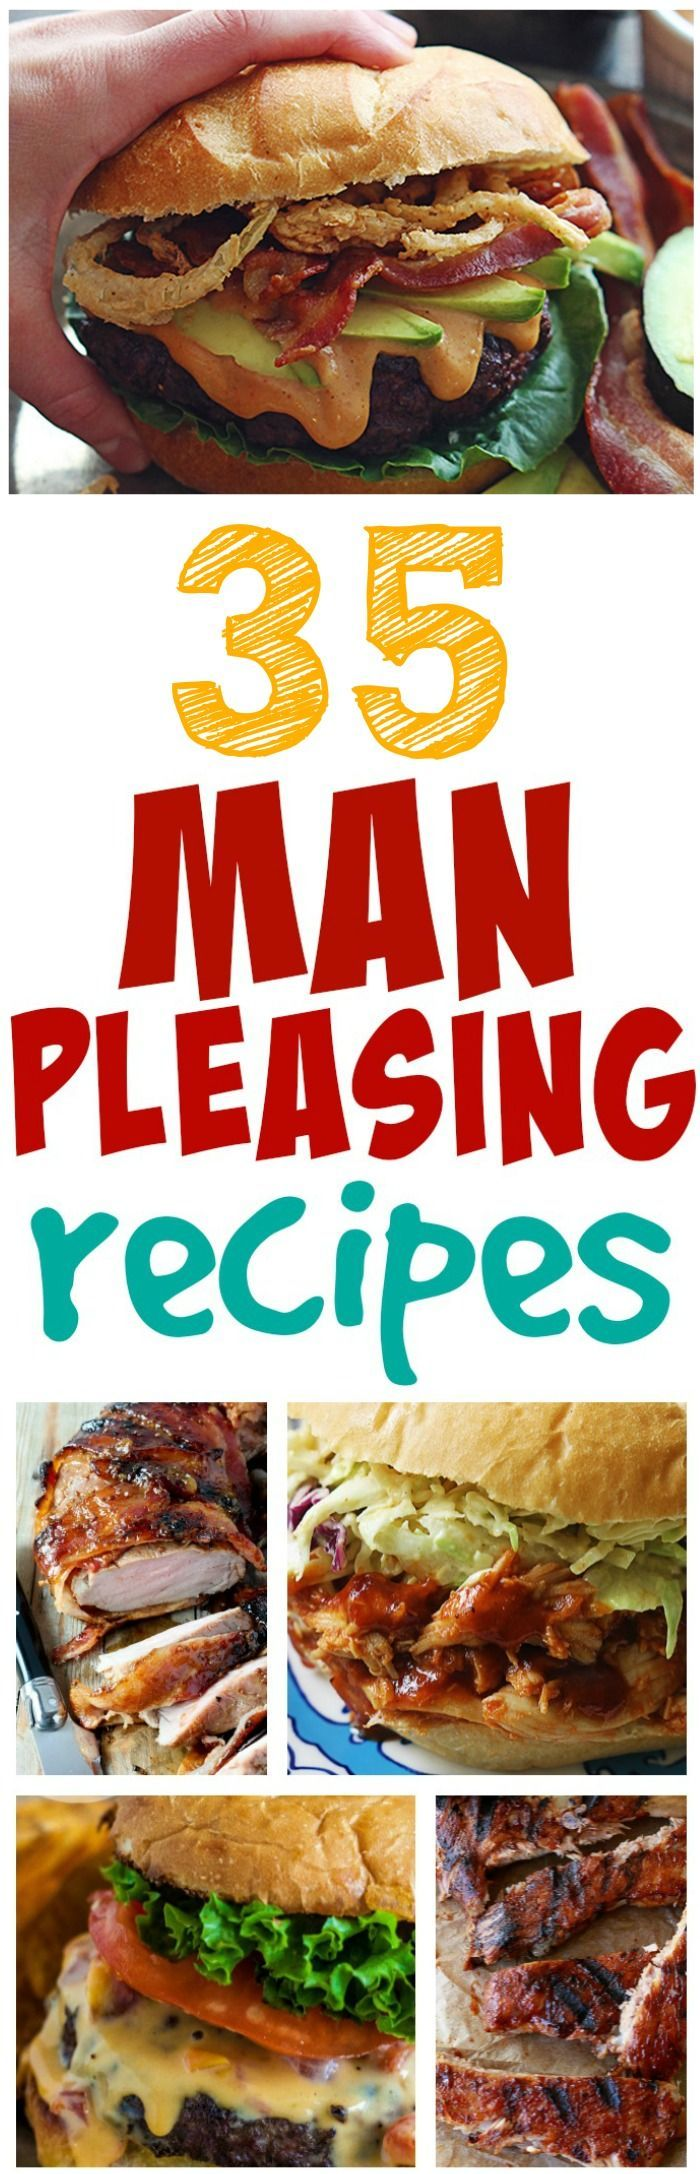 Check out this recipe round up, just in time for Father's Day! | The Recipe Critic